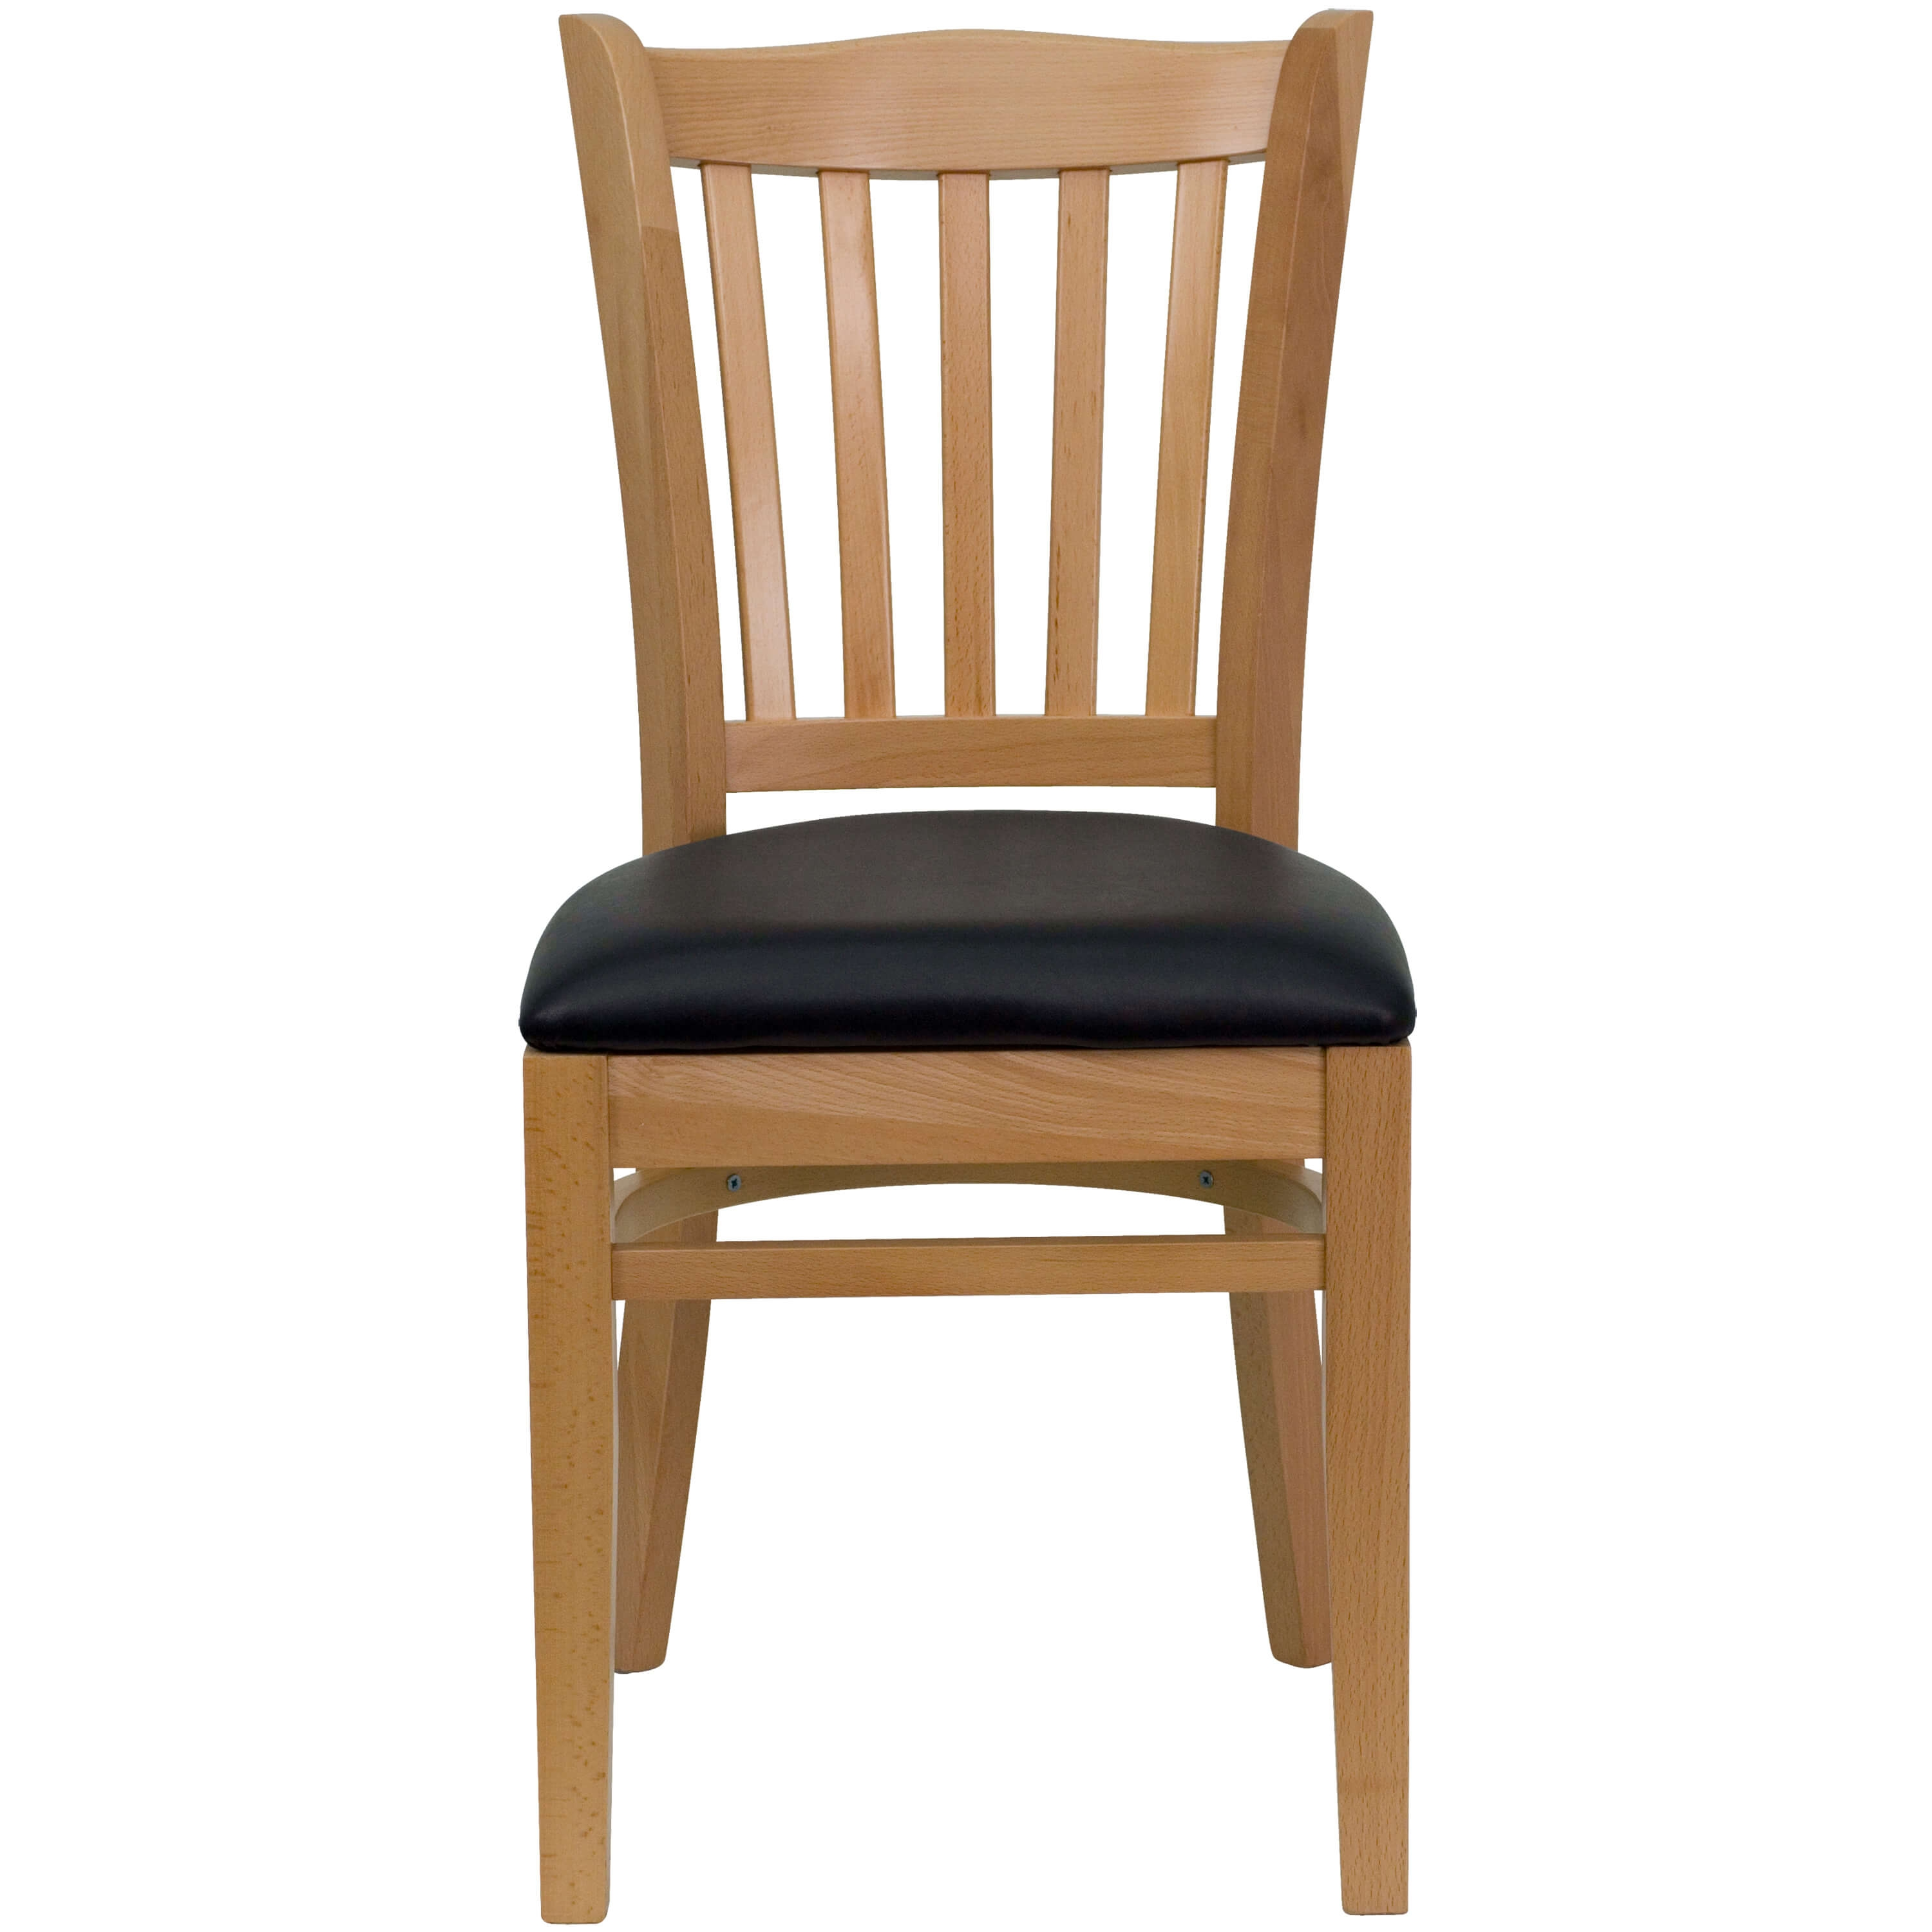 Vertical slat back chair front view